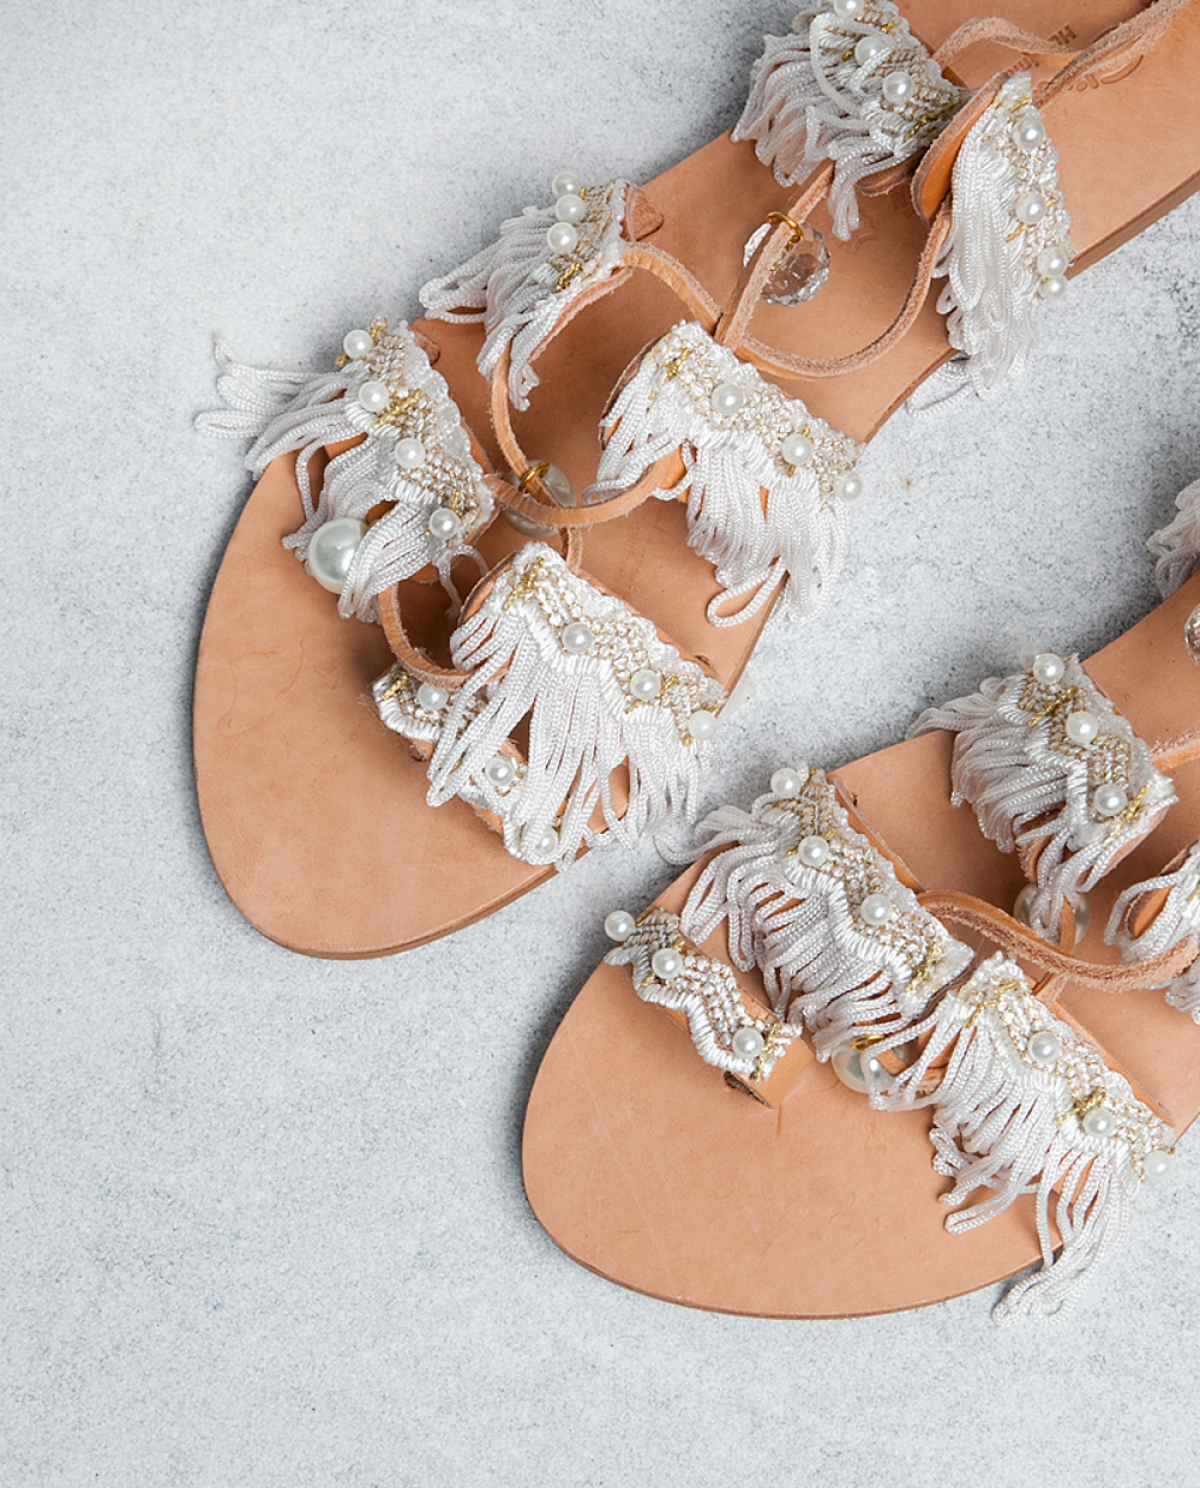 e05f6a2b1 Ever After Tie-up Leather Sandals - Fashionnoiz